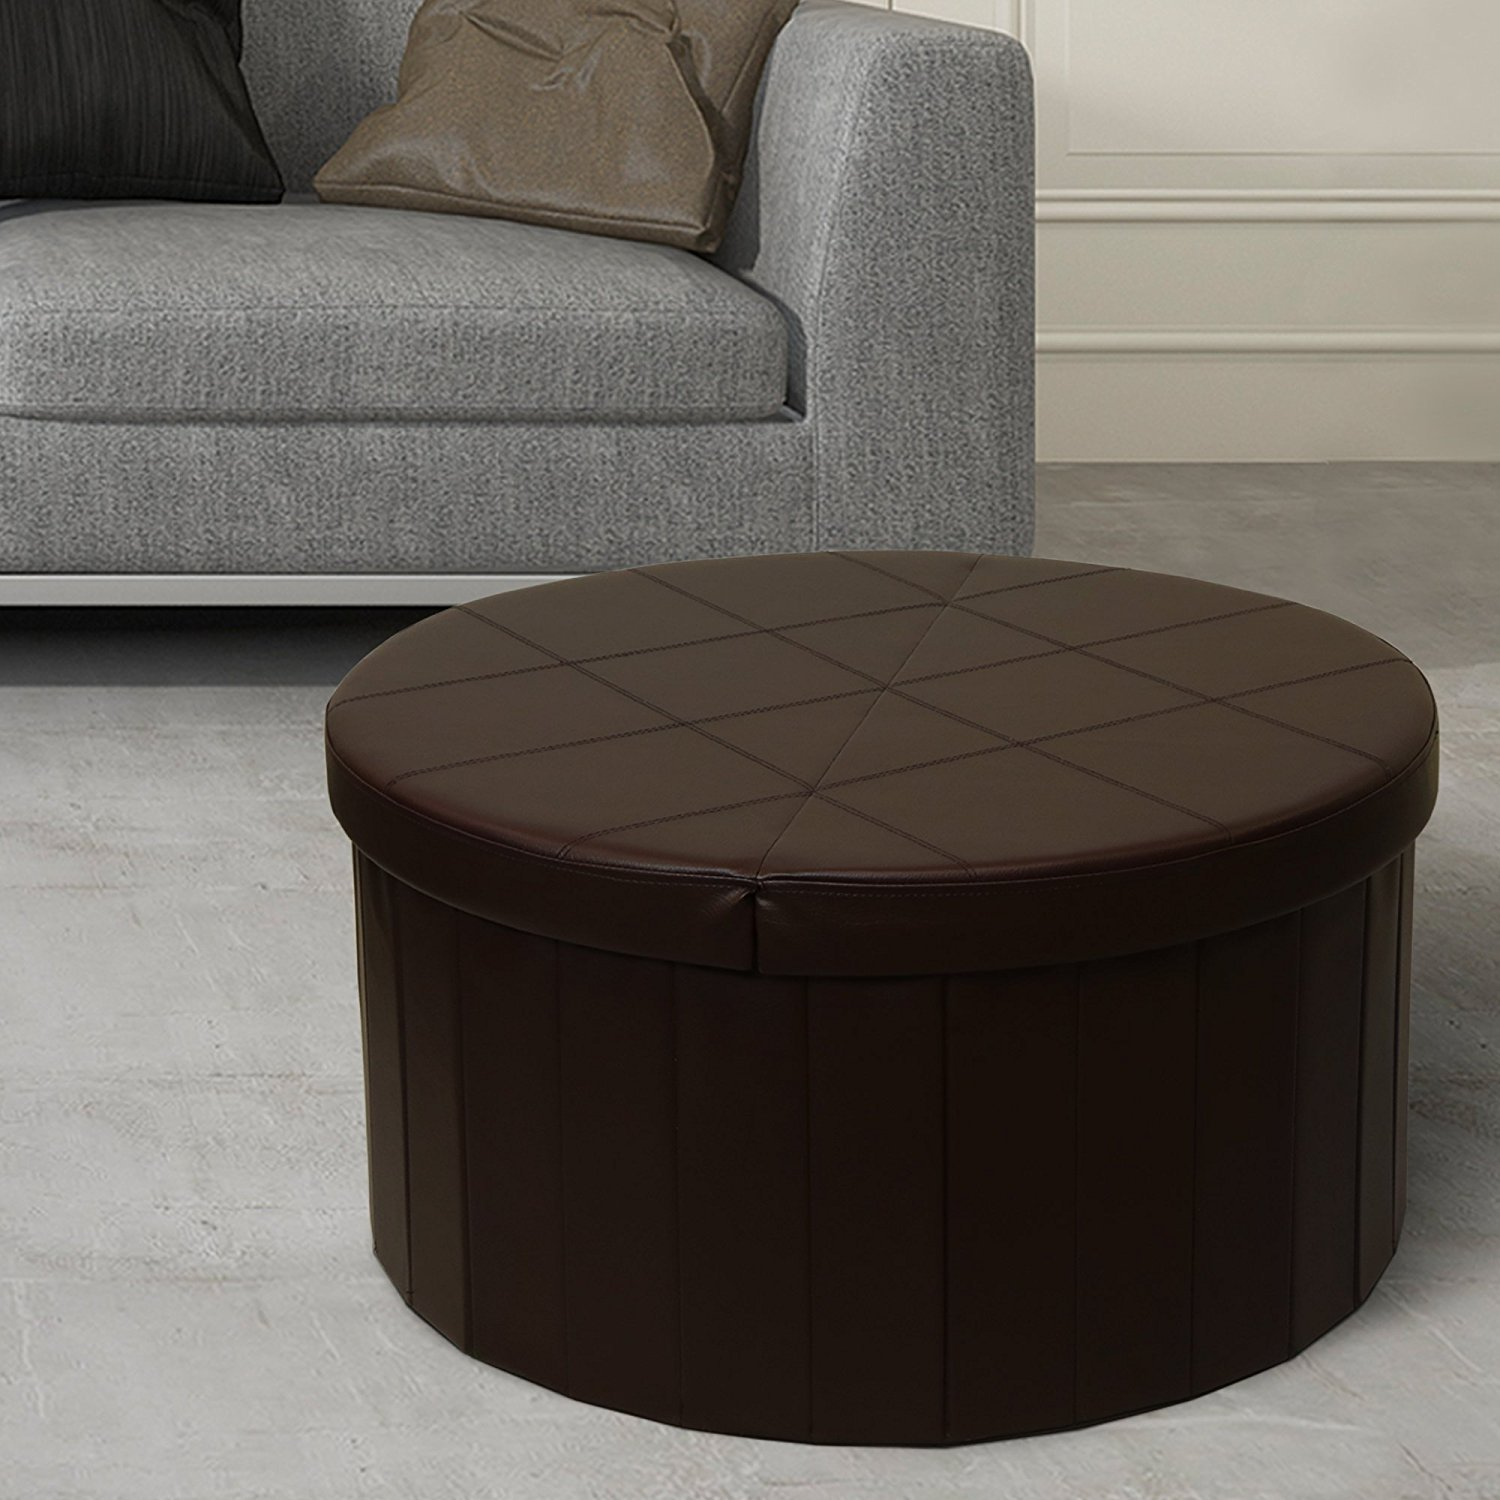 Otto Amp Ben Storage Ottoman Coffee Table With Smart Lift